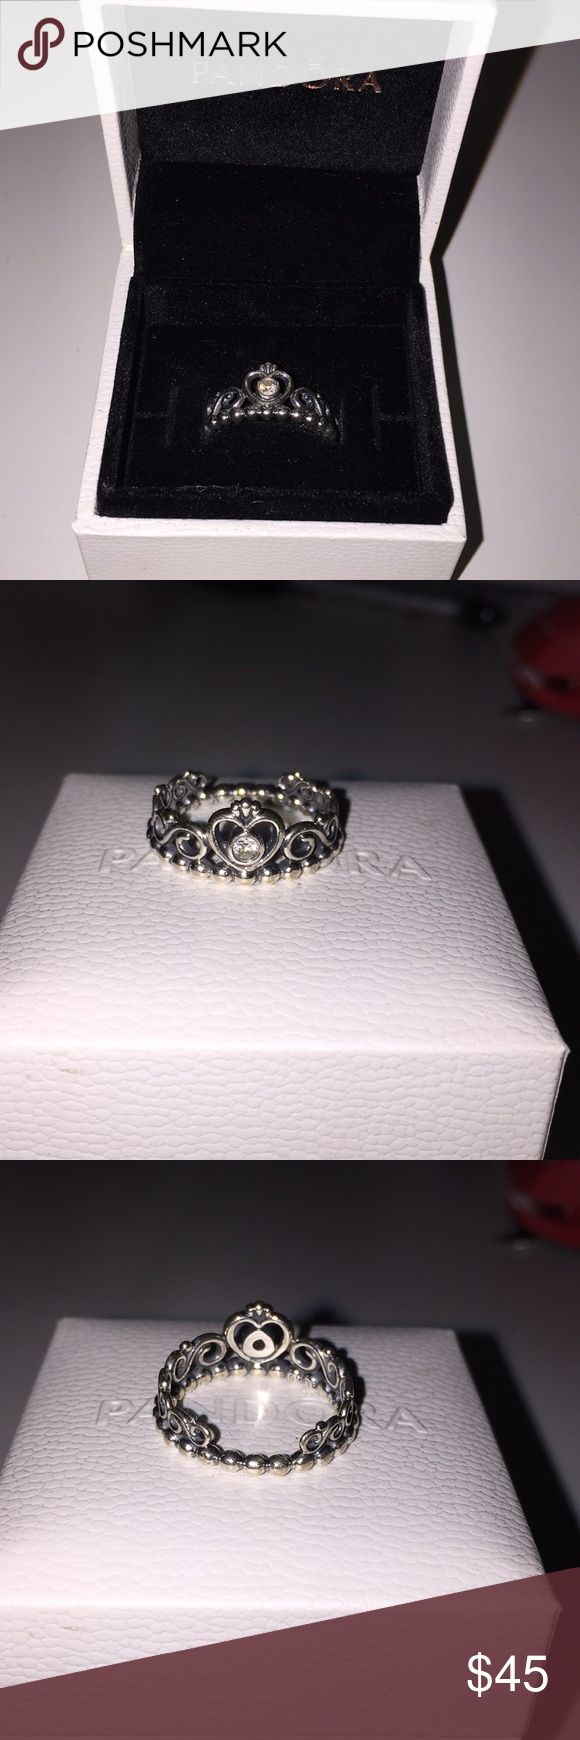 Pandora Princess Ring Worn a handful of times. Nothing wrong with it. It's just too big for me. Pandora Jewelry Rings